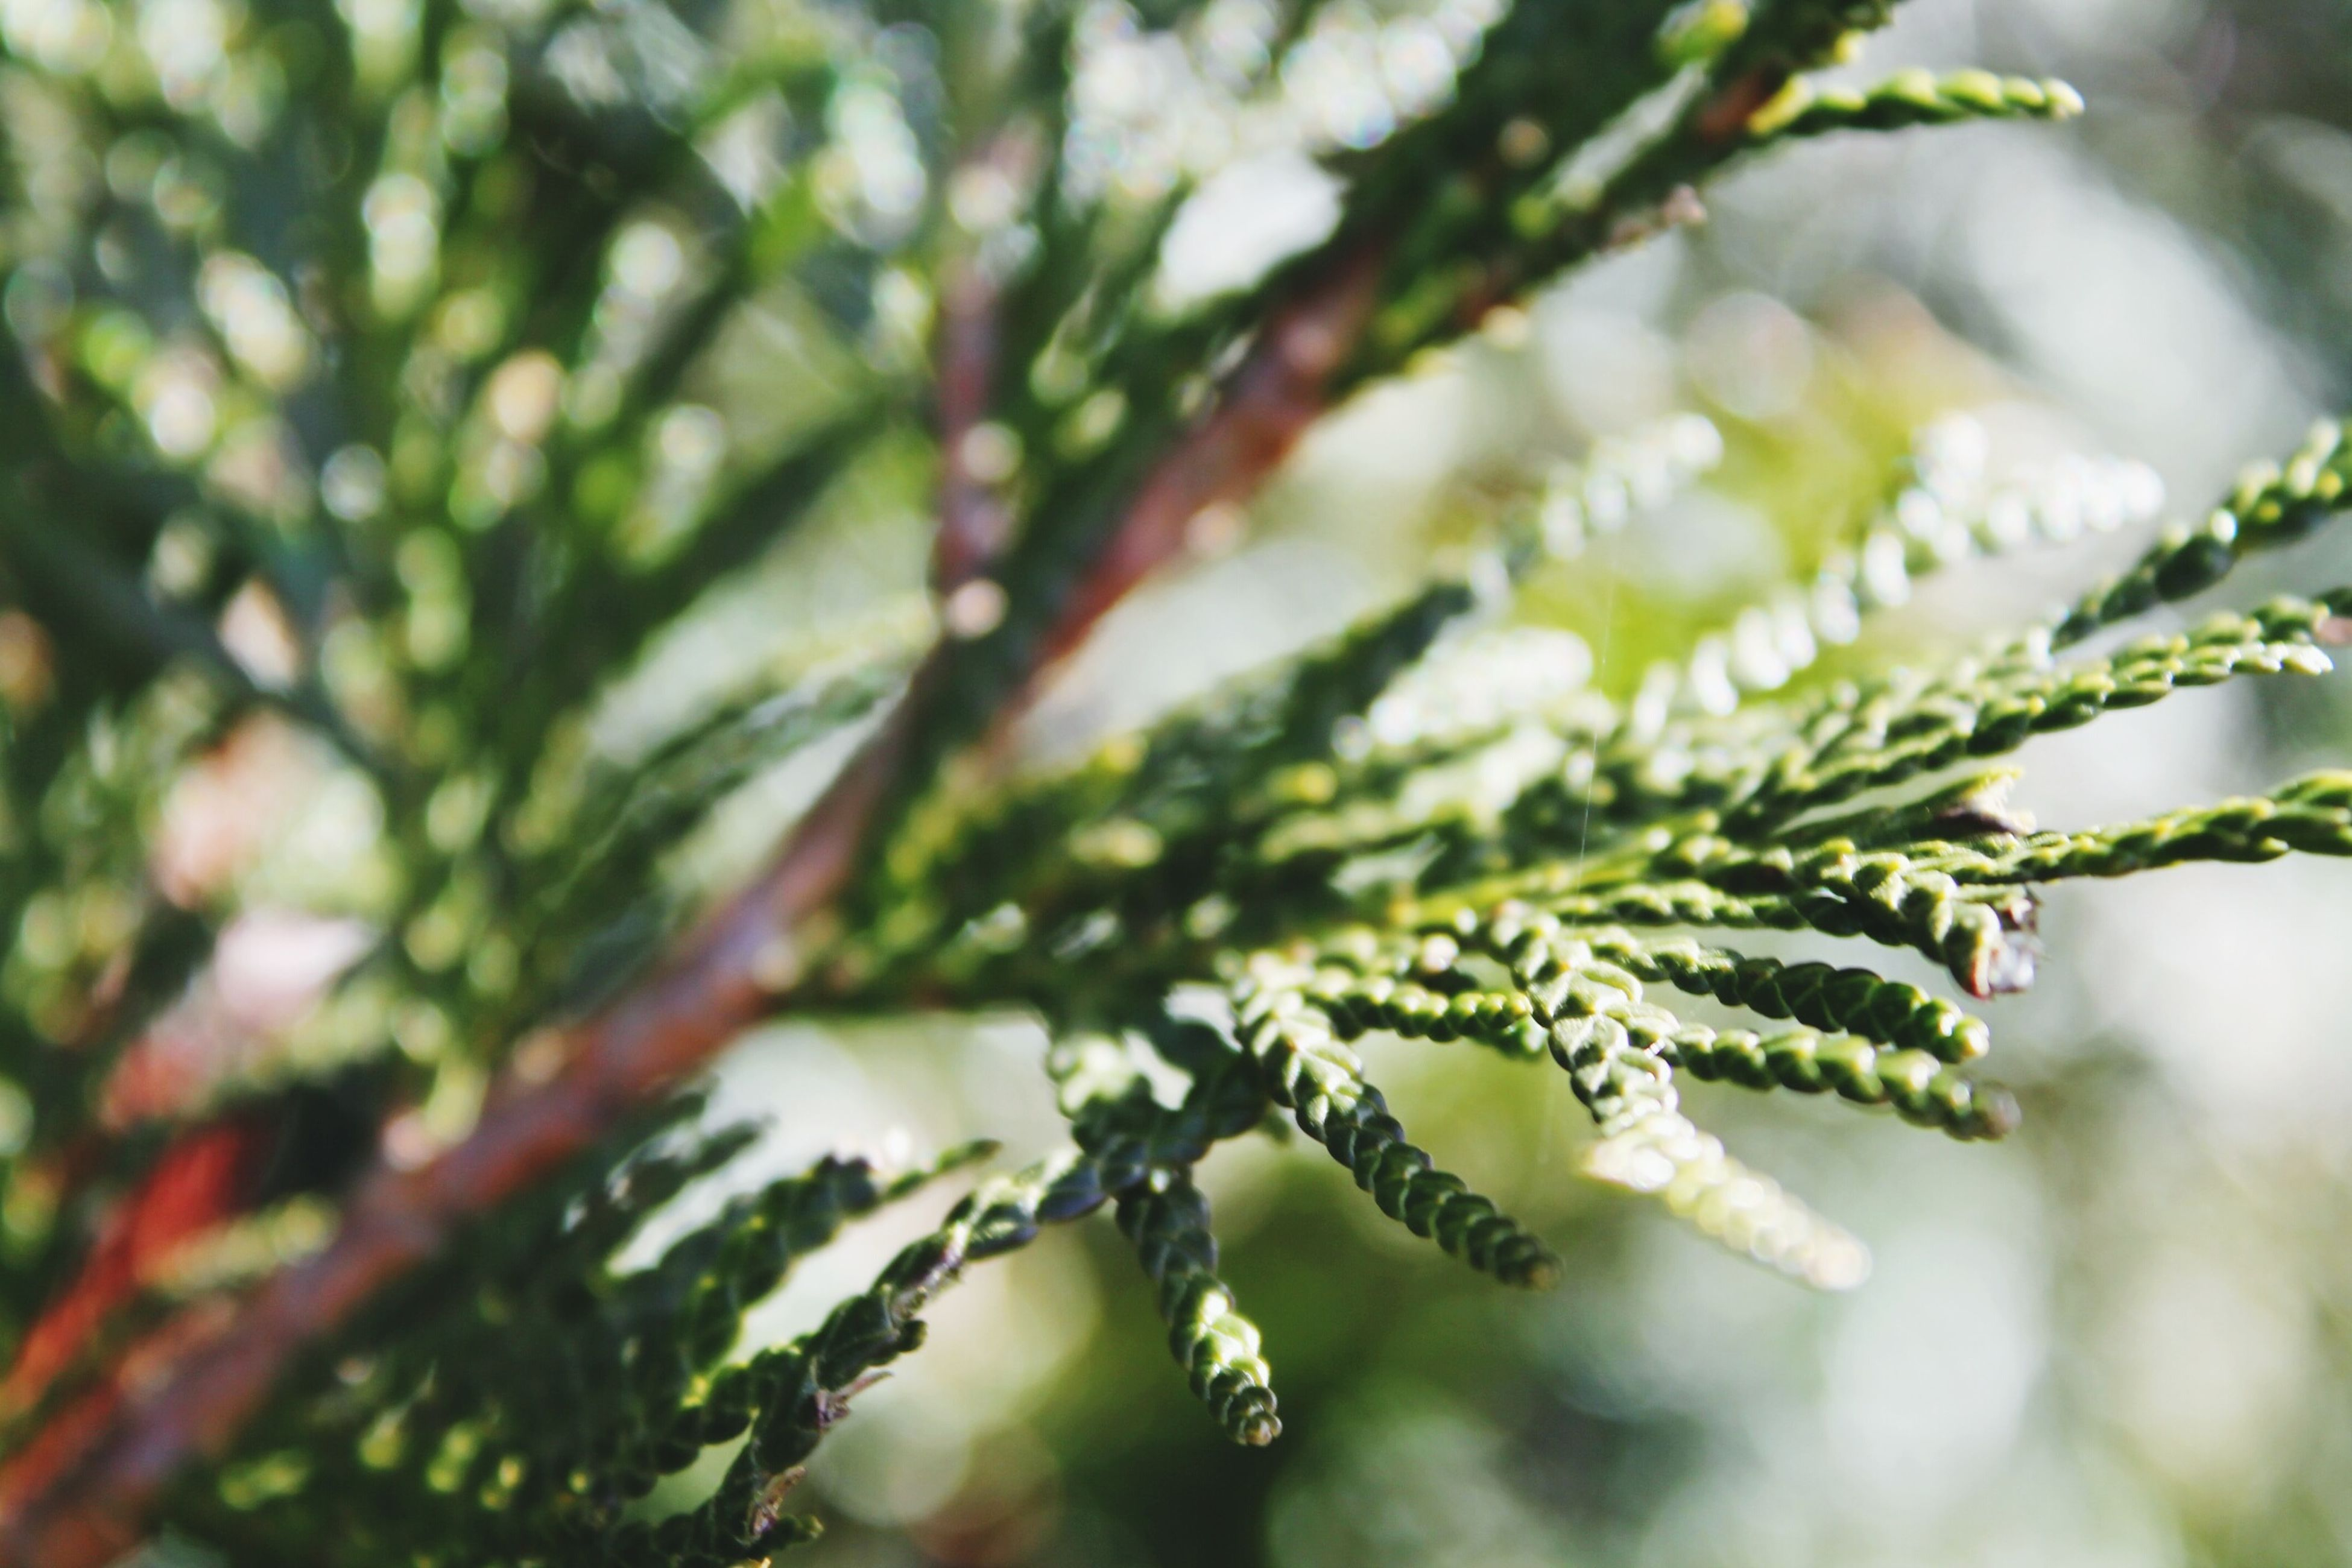 growth, close-up, focus on foreground, nature, leaf, plant, branch, selective focus, beauty in nature, tree, low angle view, day, botany, freshness, spiked, outdoors, fragility, twig, thorn, green color